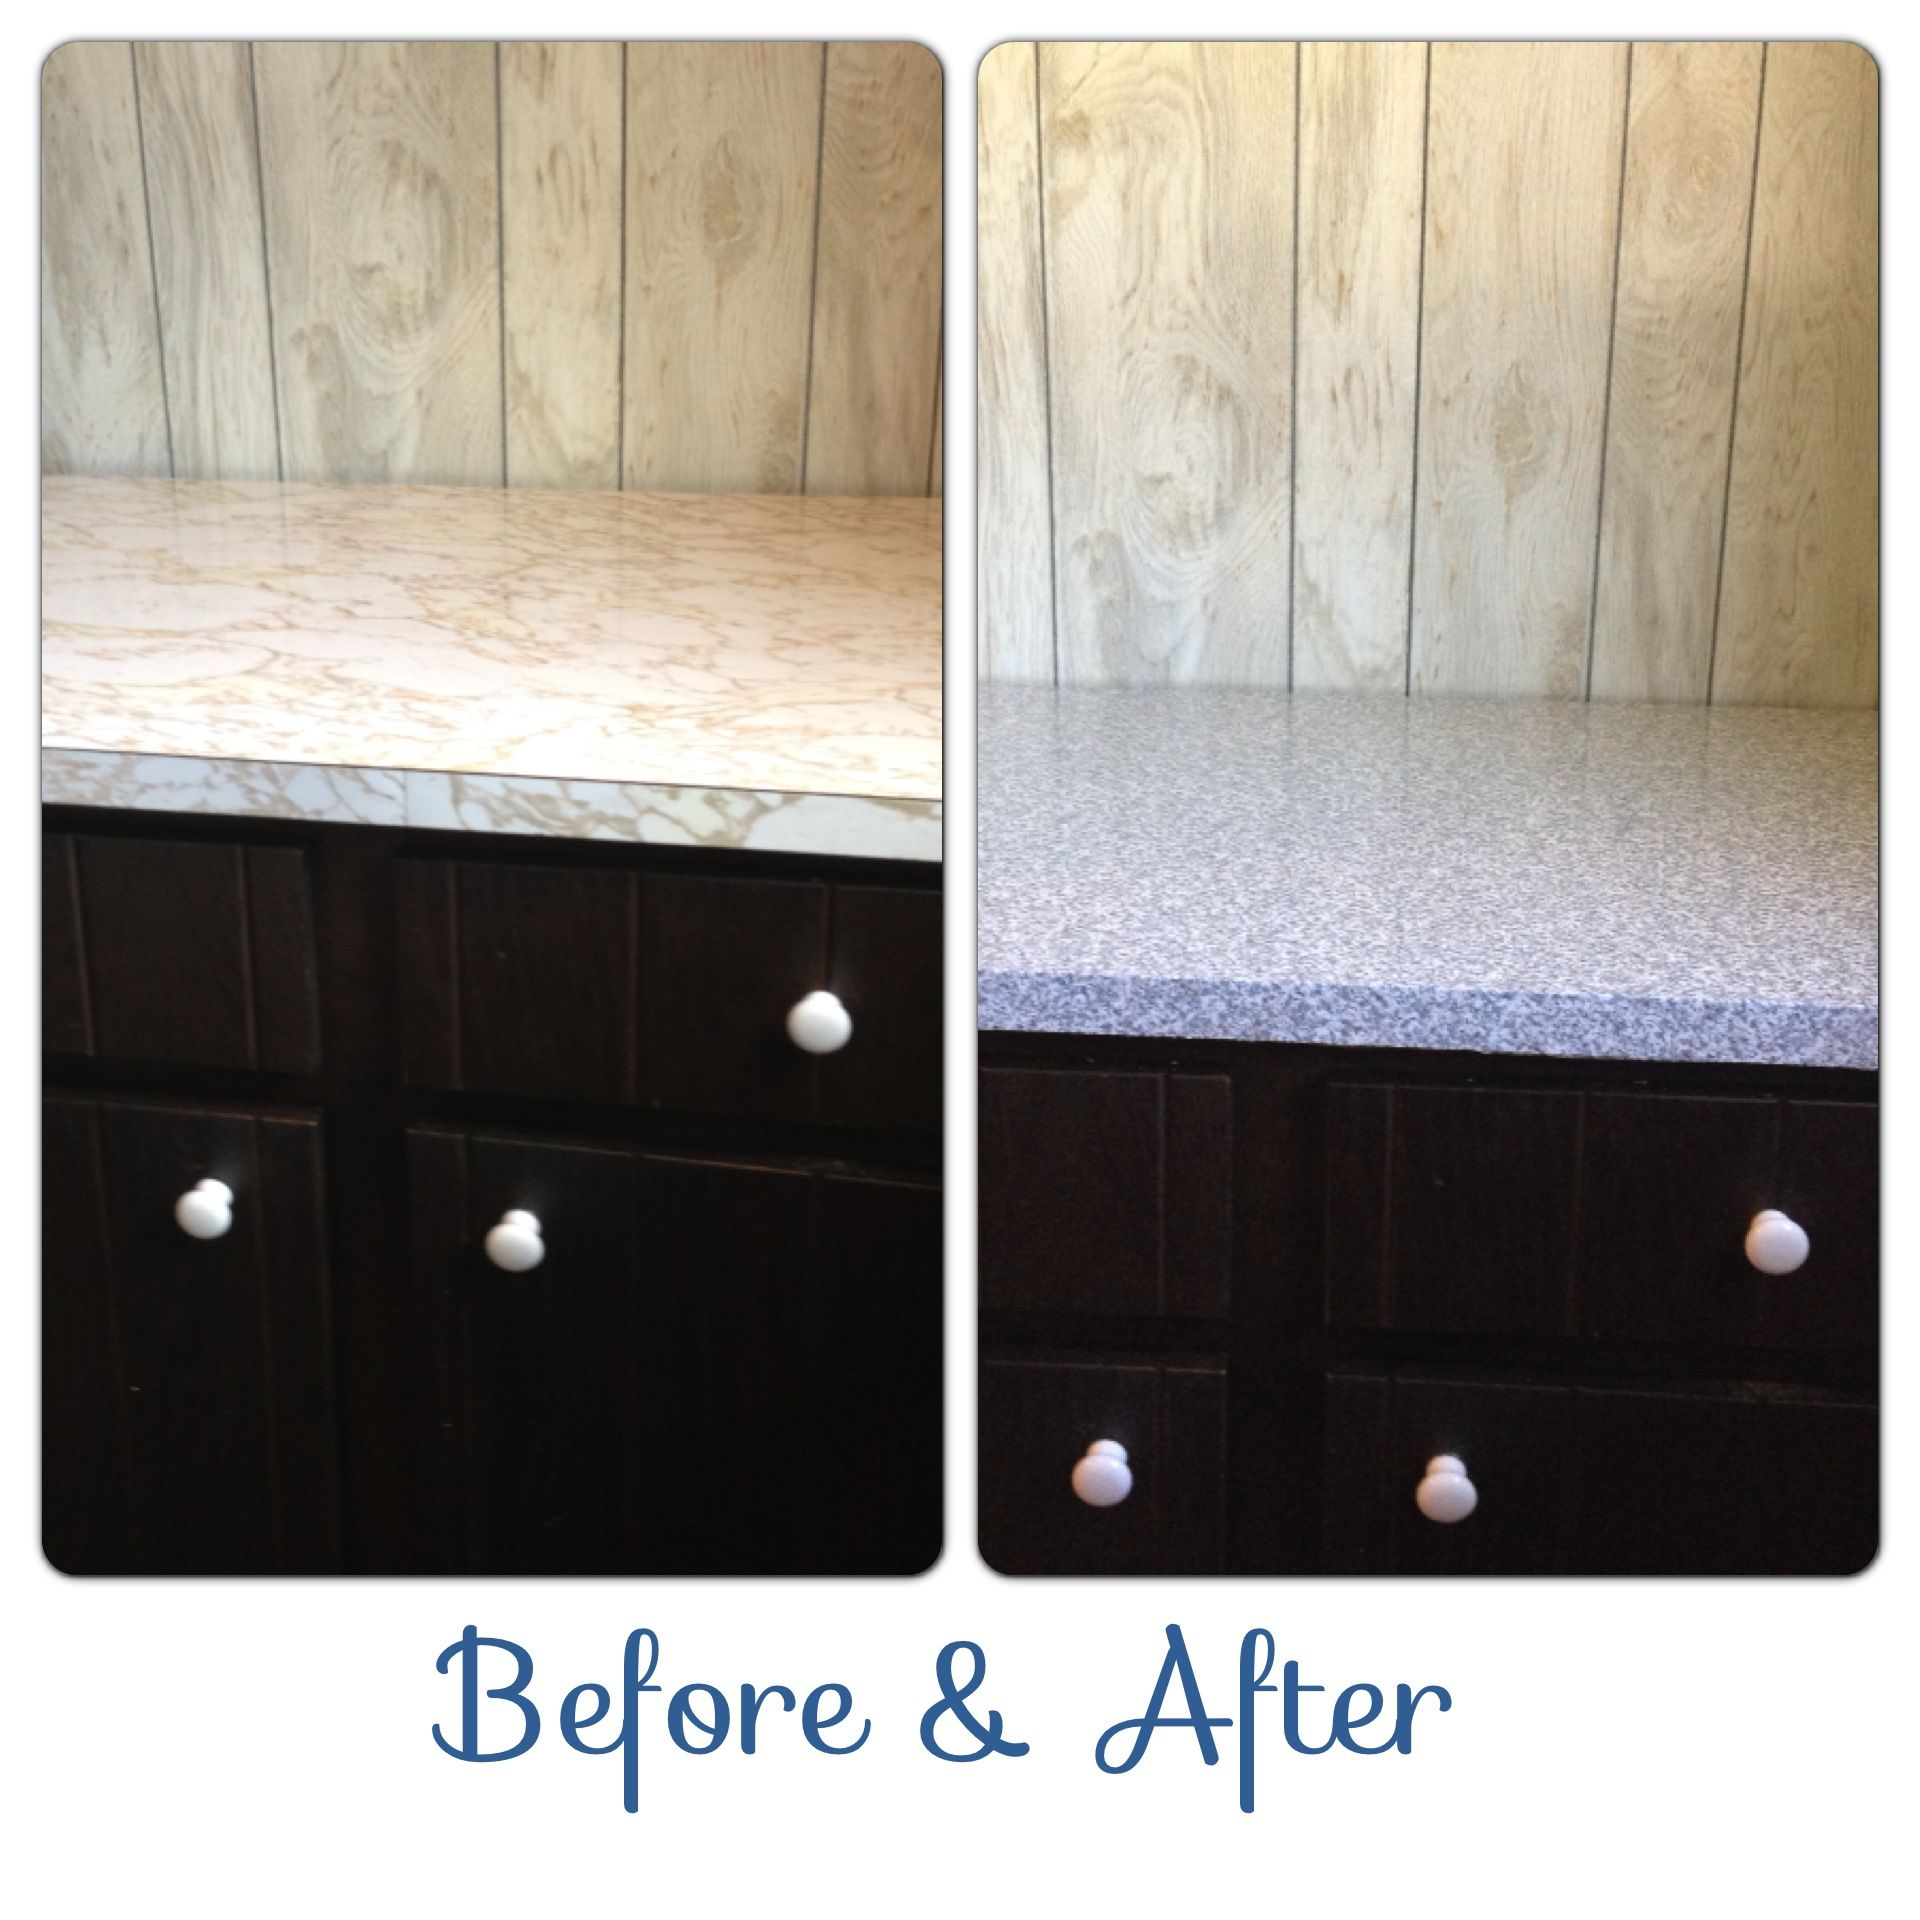 Faux Granite Countertops Lowes Granite Contact Paper Countertops Before And After In A